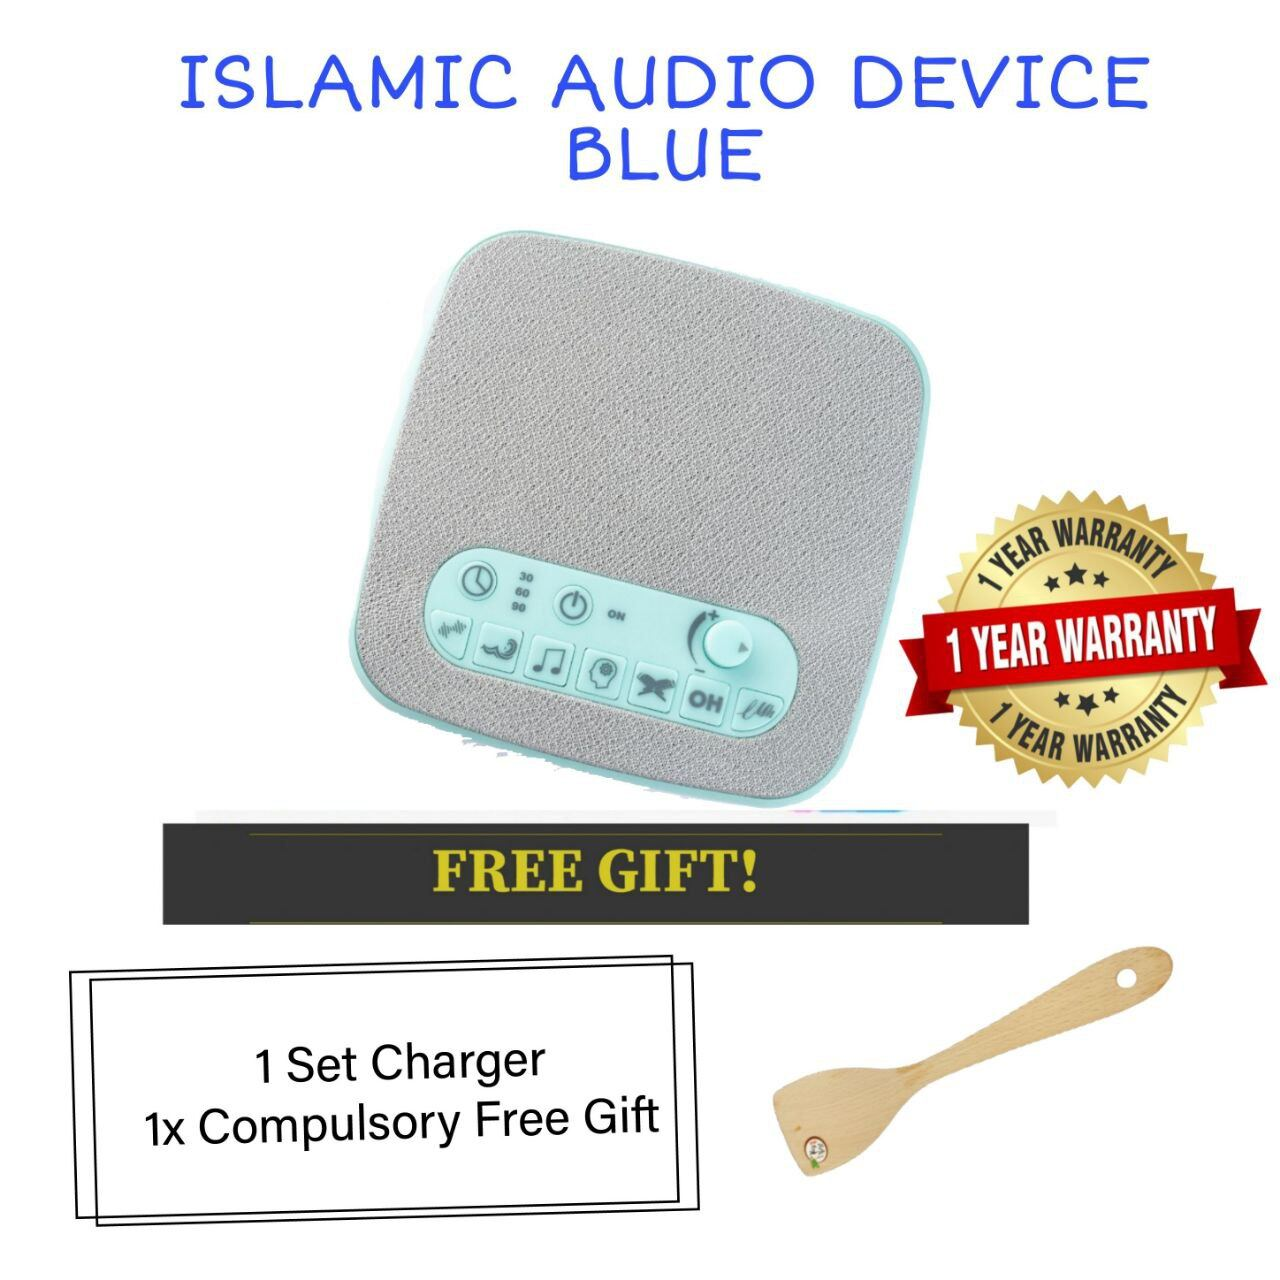 (READY STOCK) ISLAMIC AUDIO DEVICE MOMMYHANA X OMAR HANA (BLUE) (9)